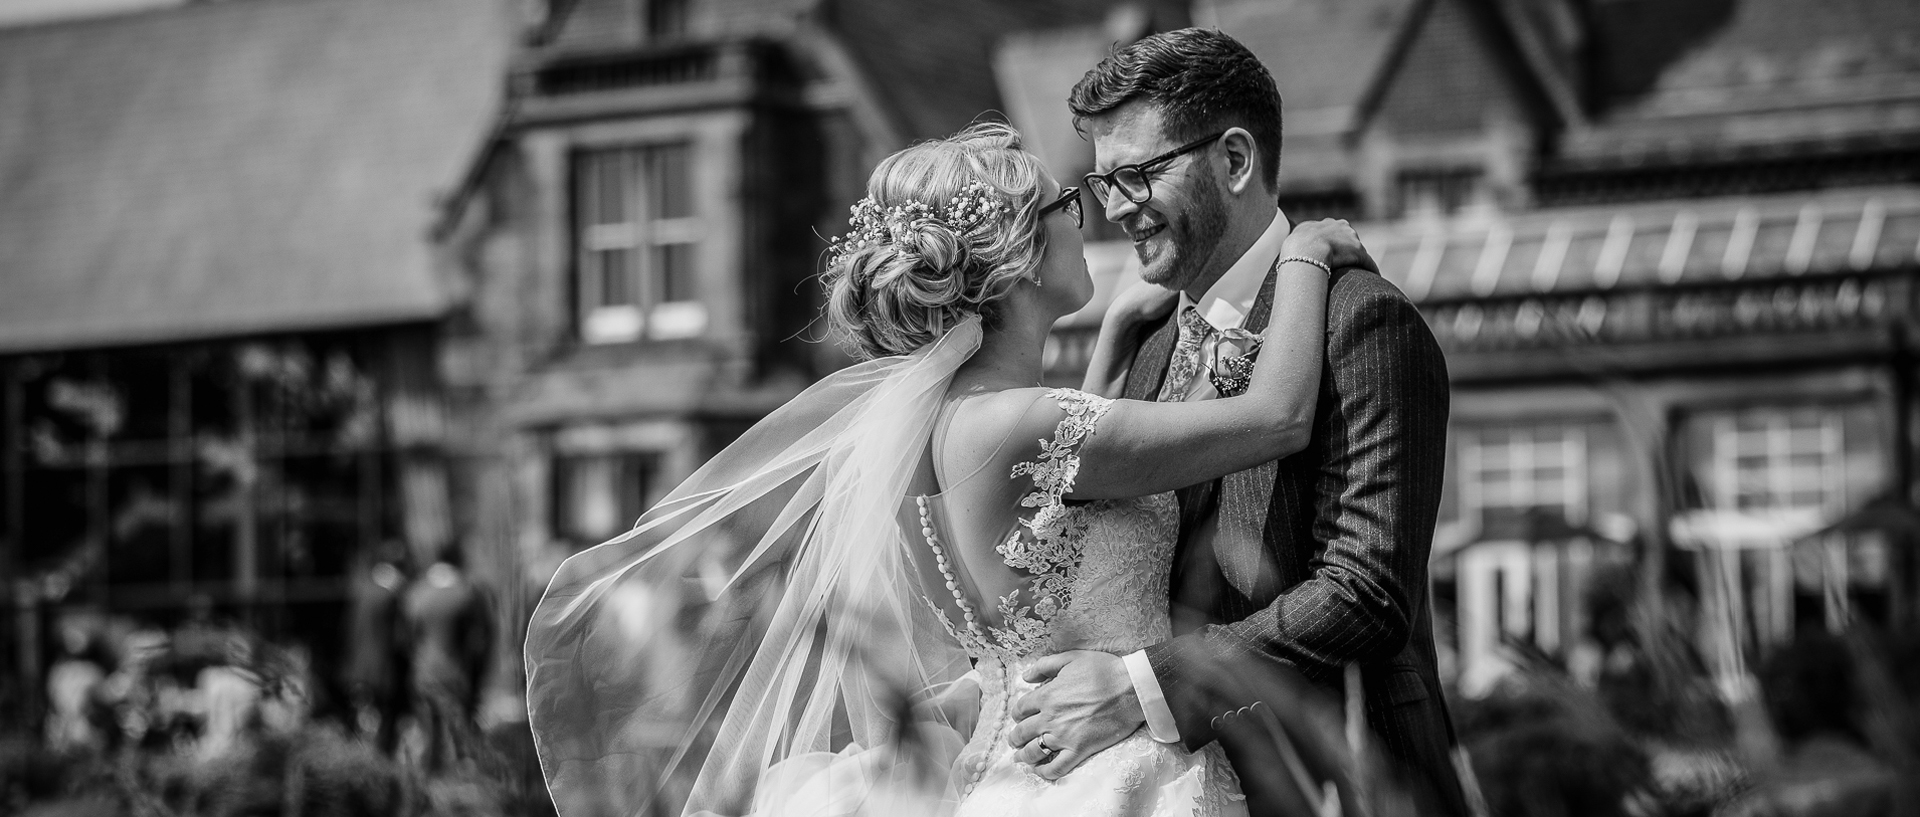 Katie & Paul's Rockliffe Hall Wedding, in the glorious North East sunshine